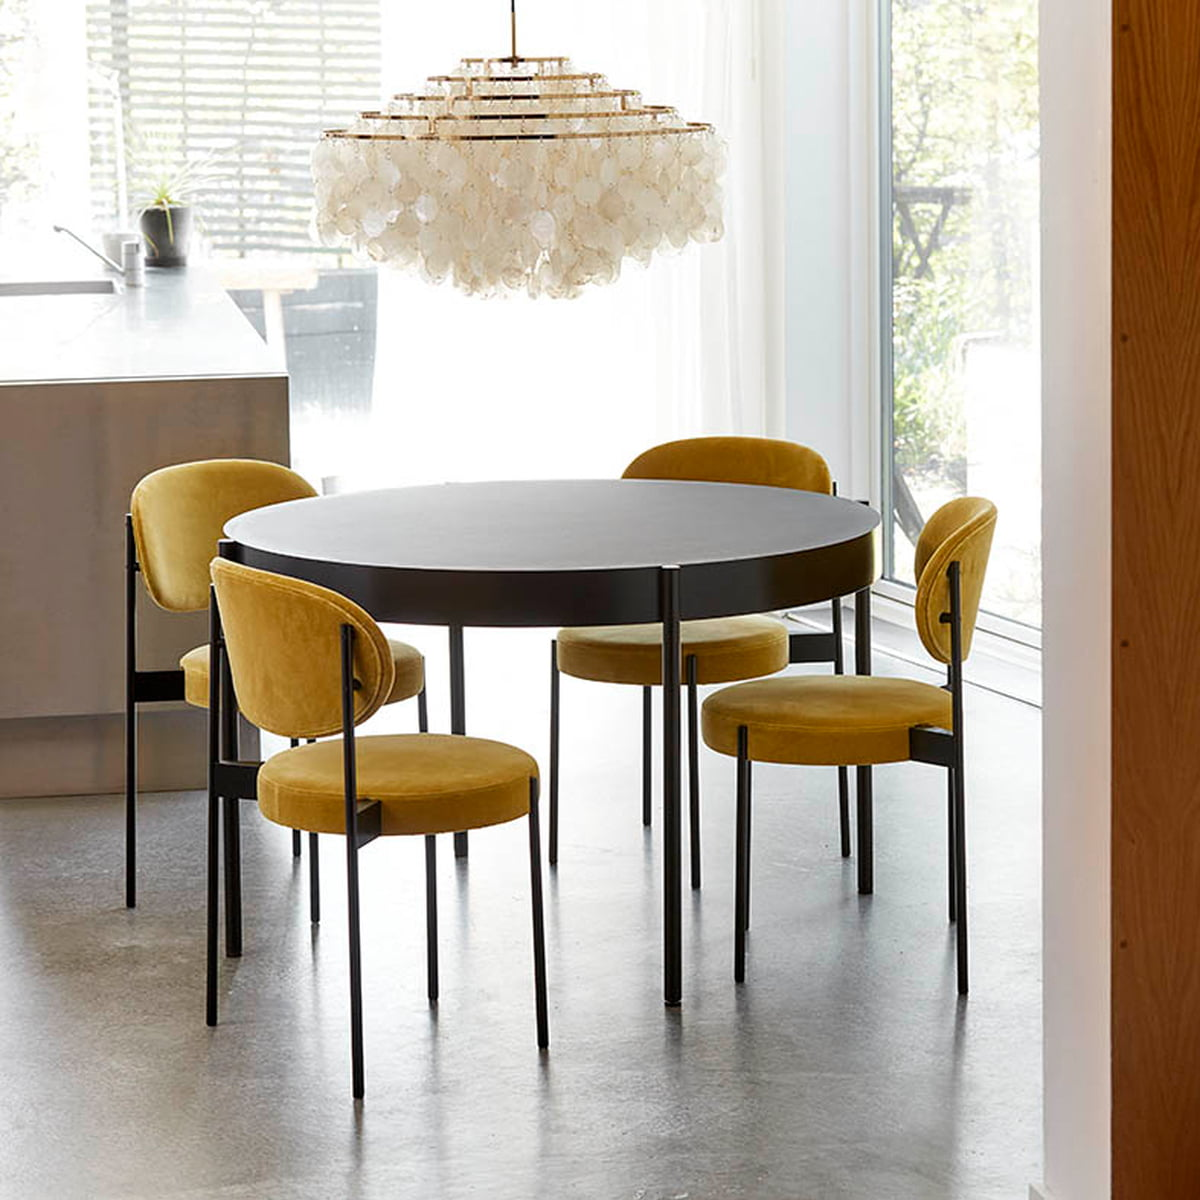 Fun Dining Room Chairs: Padded 430 Chair By Verner Panton